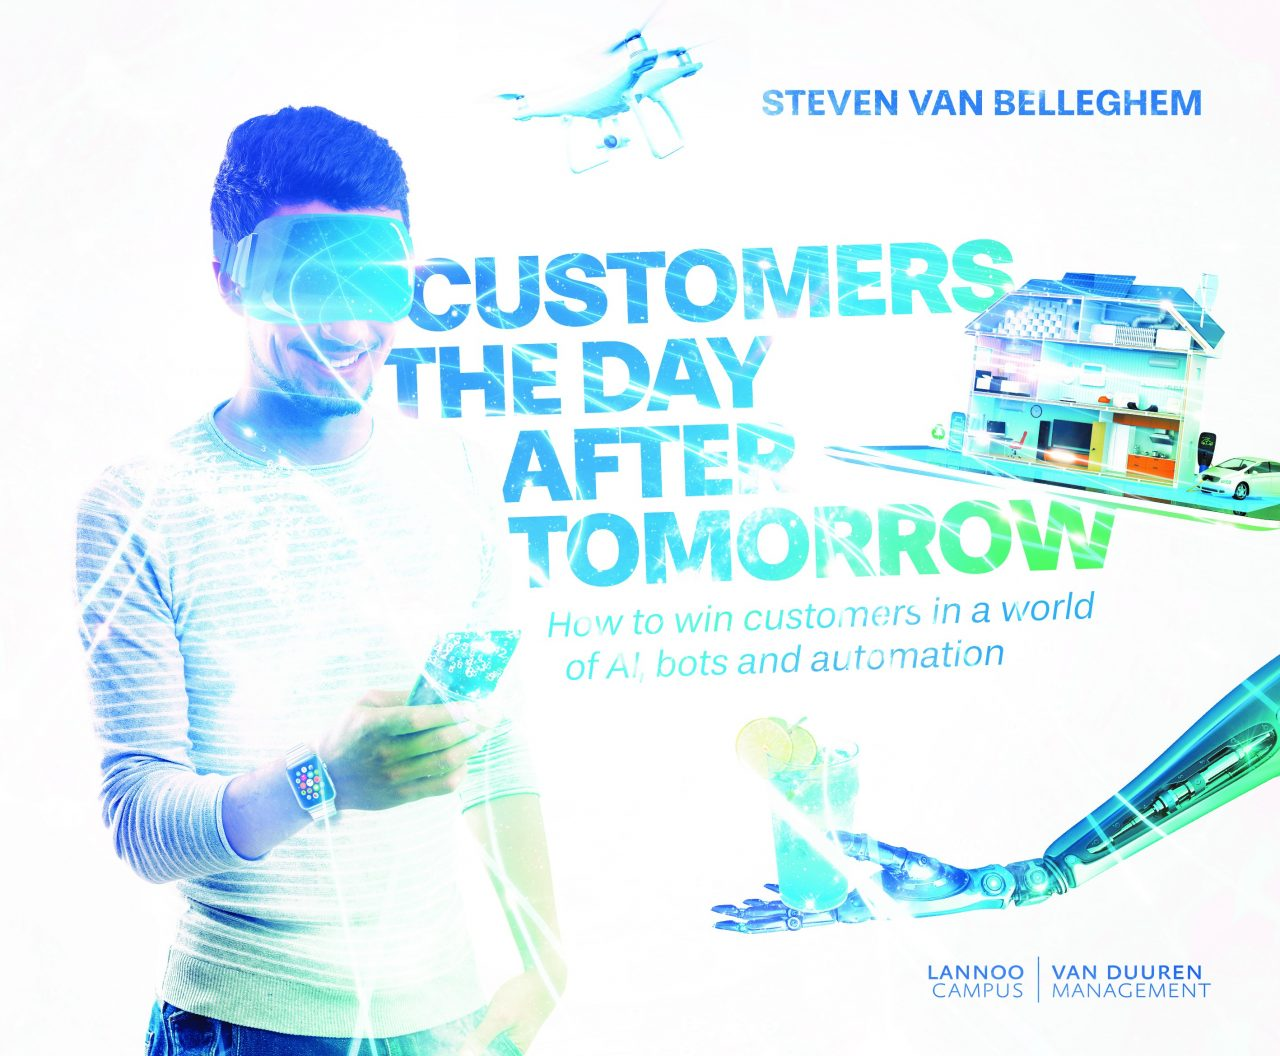 Customers-The-Day-After-Tomorrow-COVER-1280x1056.jpg